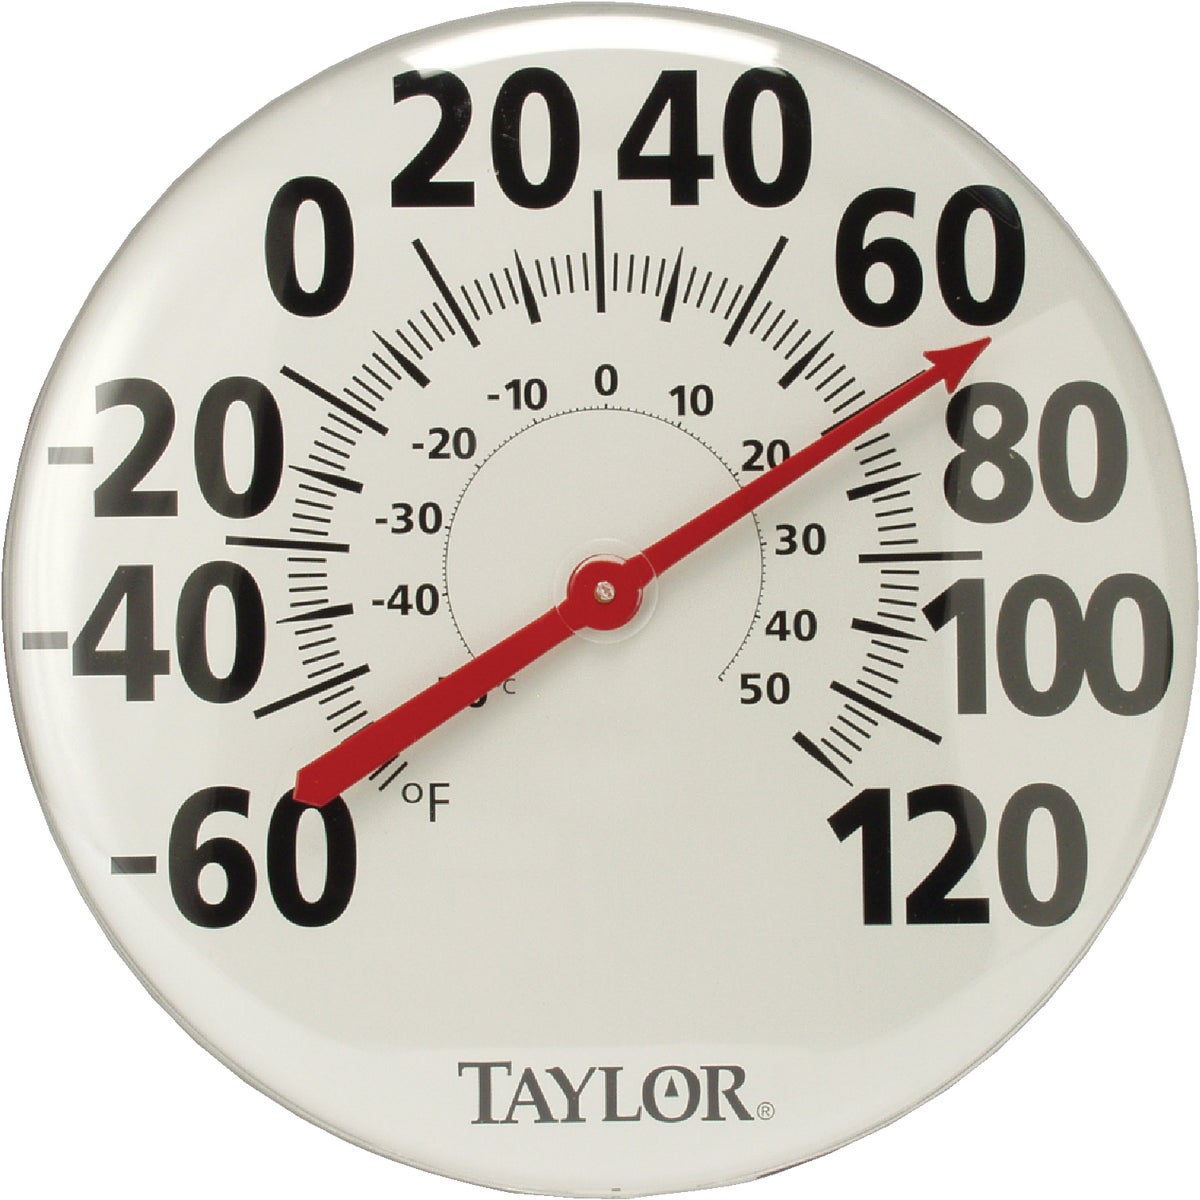 OUTDOOR THERMOMETER - 681 by Taylor Precision